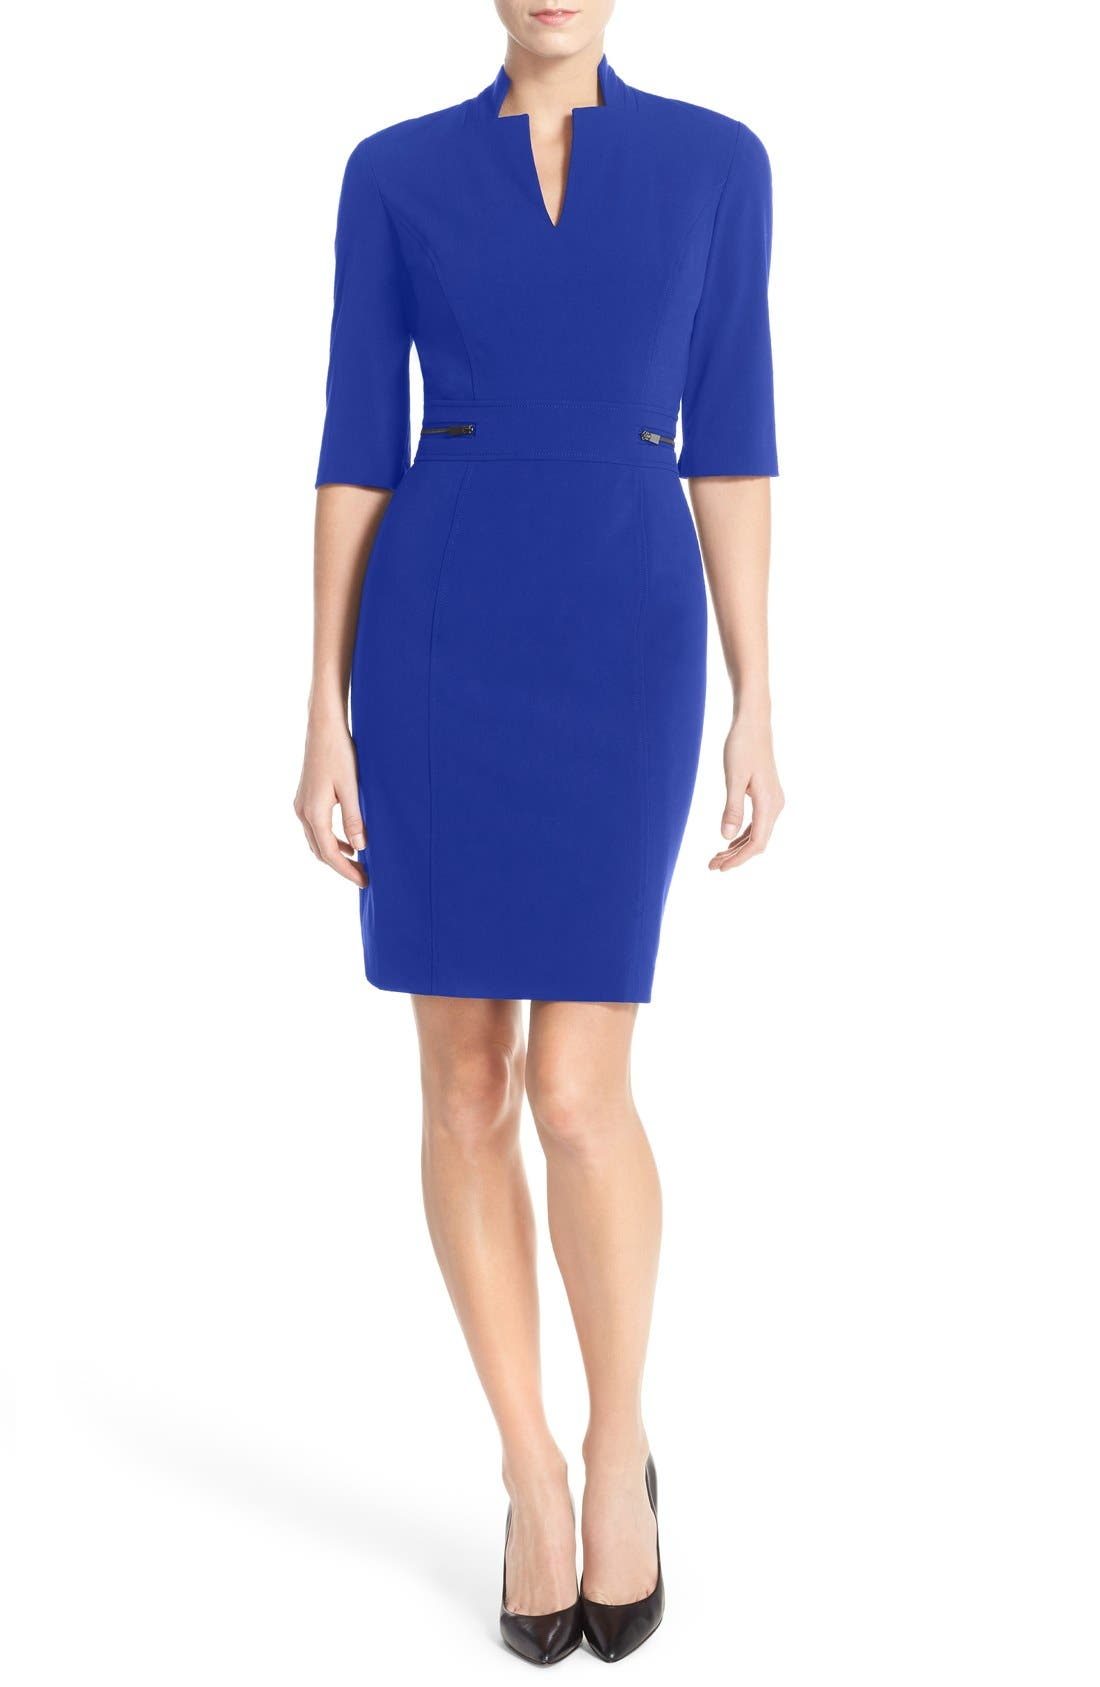 Alternate Image 1 Selected - Tahari Bi-Stretch Sheath Dress (Regular & Petite)